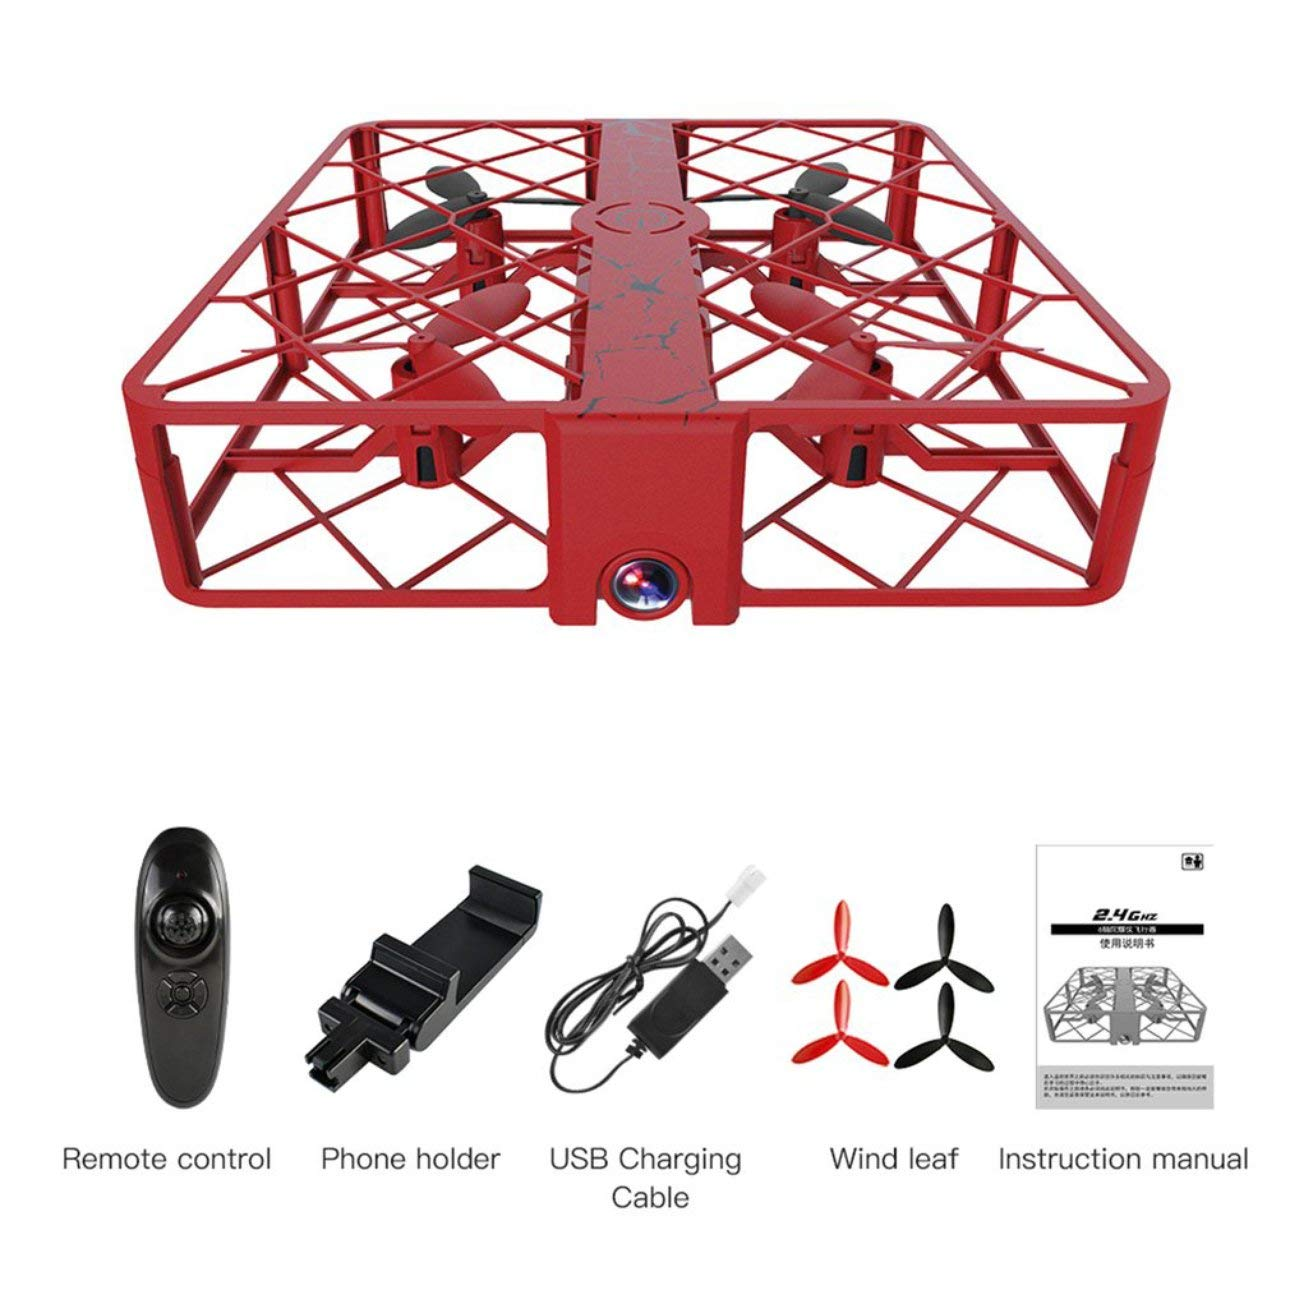 Liobaba SG500 Mini RC Drone WiFi Remote Quadcopter 720P HD 2MP Camera Wide Angle Lens 4CH Altitude Hold Headless Mode Helicopter